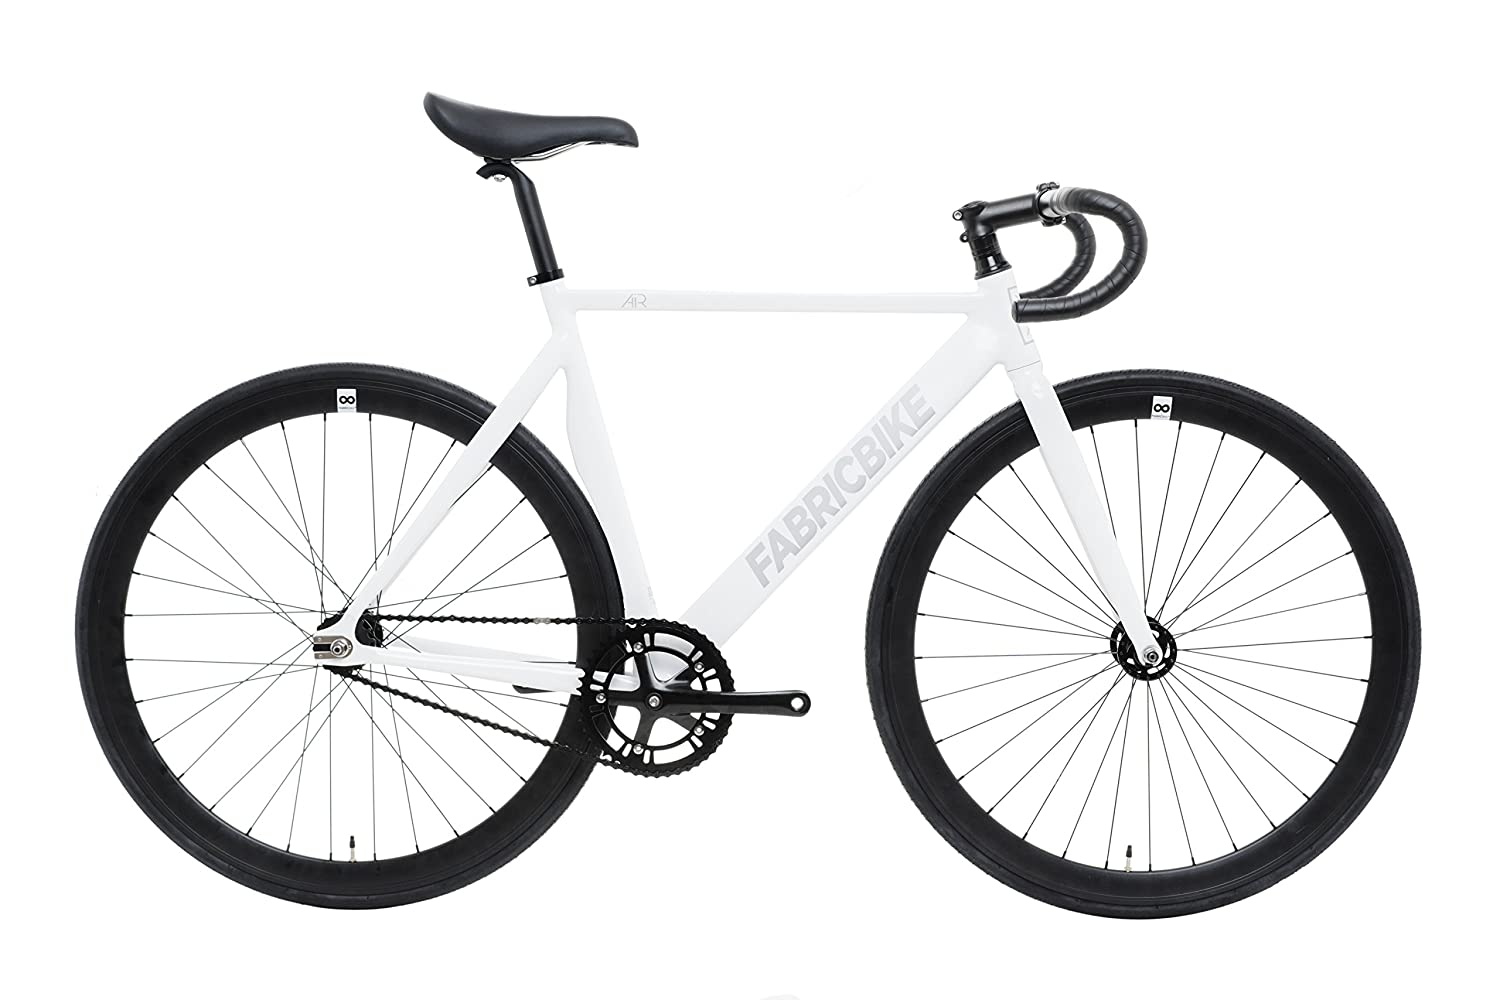 FabricBike Air- Bicicleta fixie, piñon fijo, Fixed Gear, Single Speed Urban Bike (Air White, M-52): Amazon.es: Deportes y aire libre